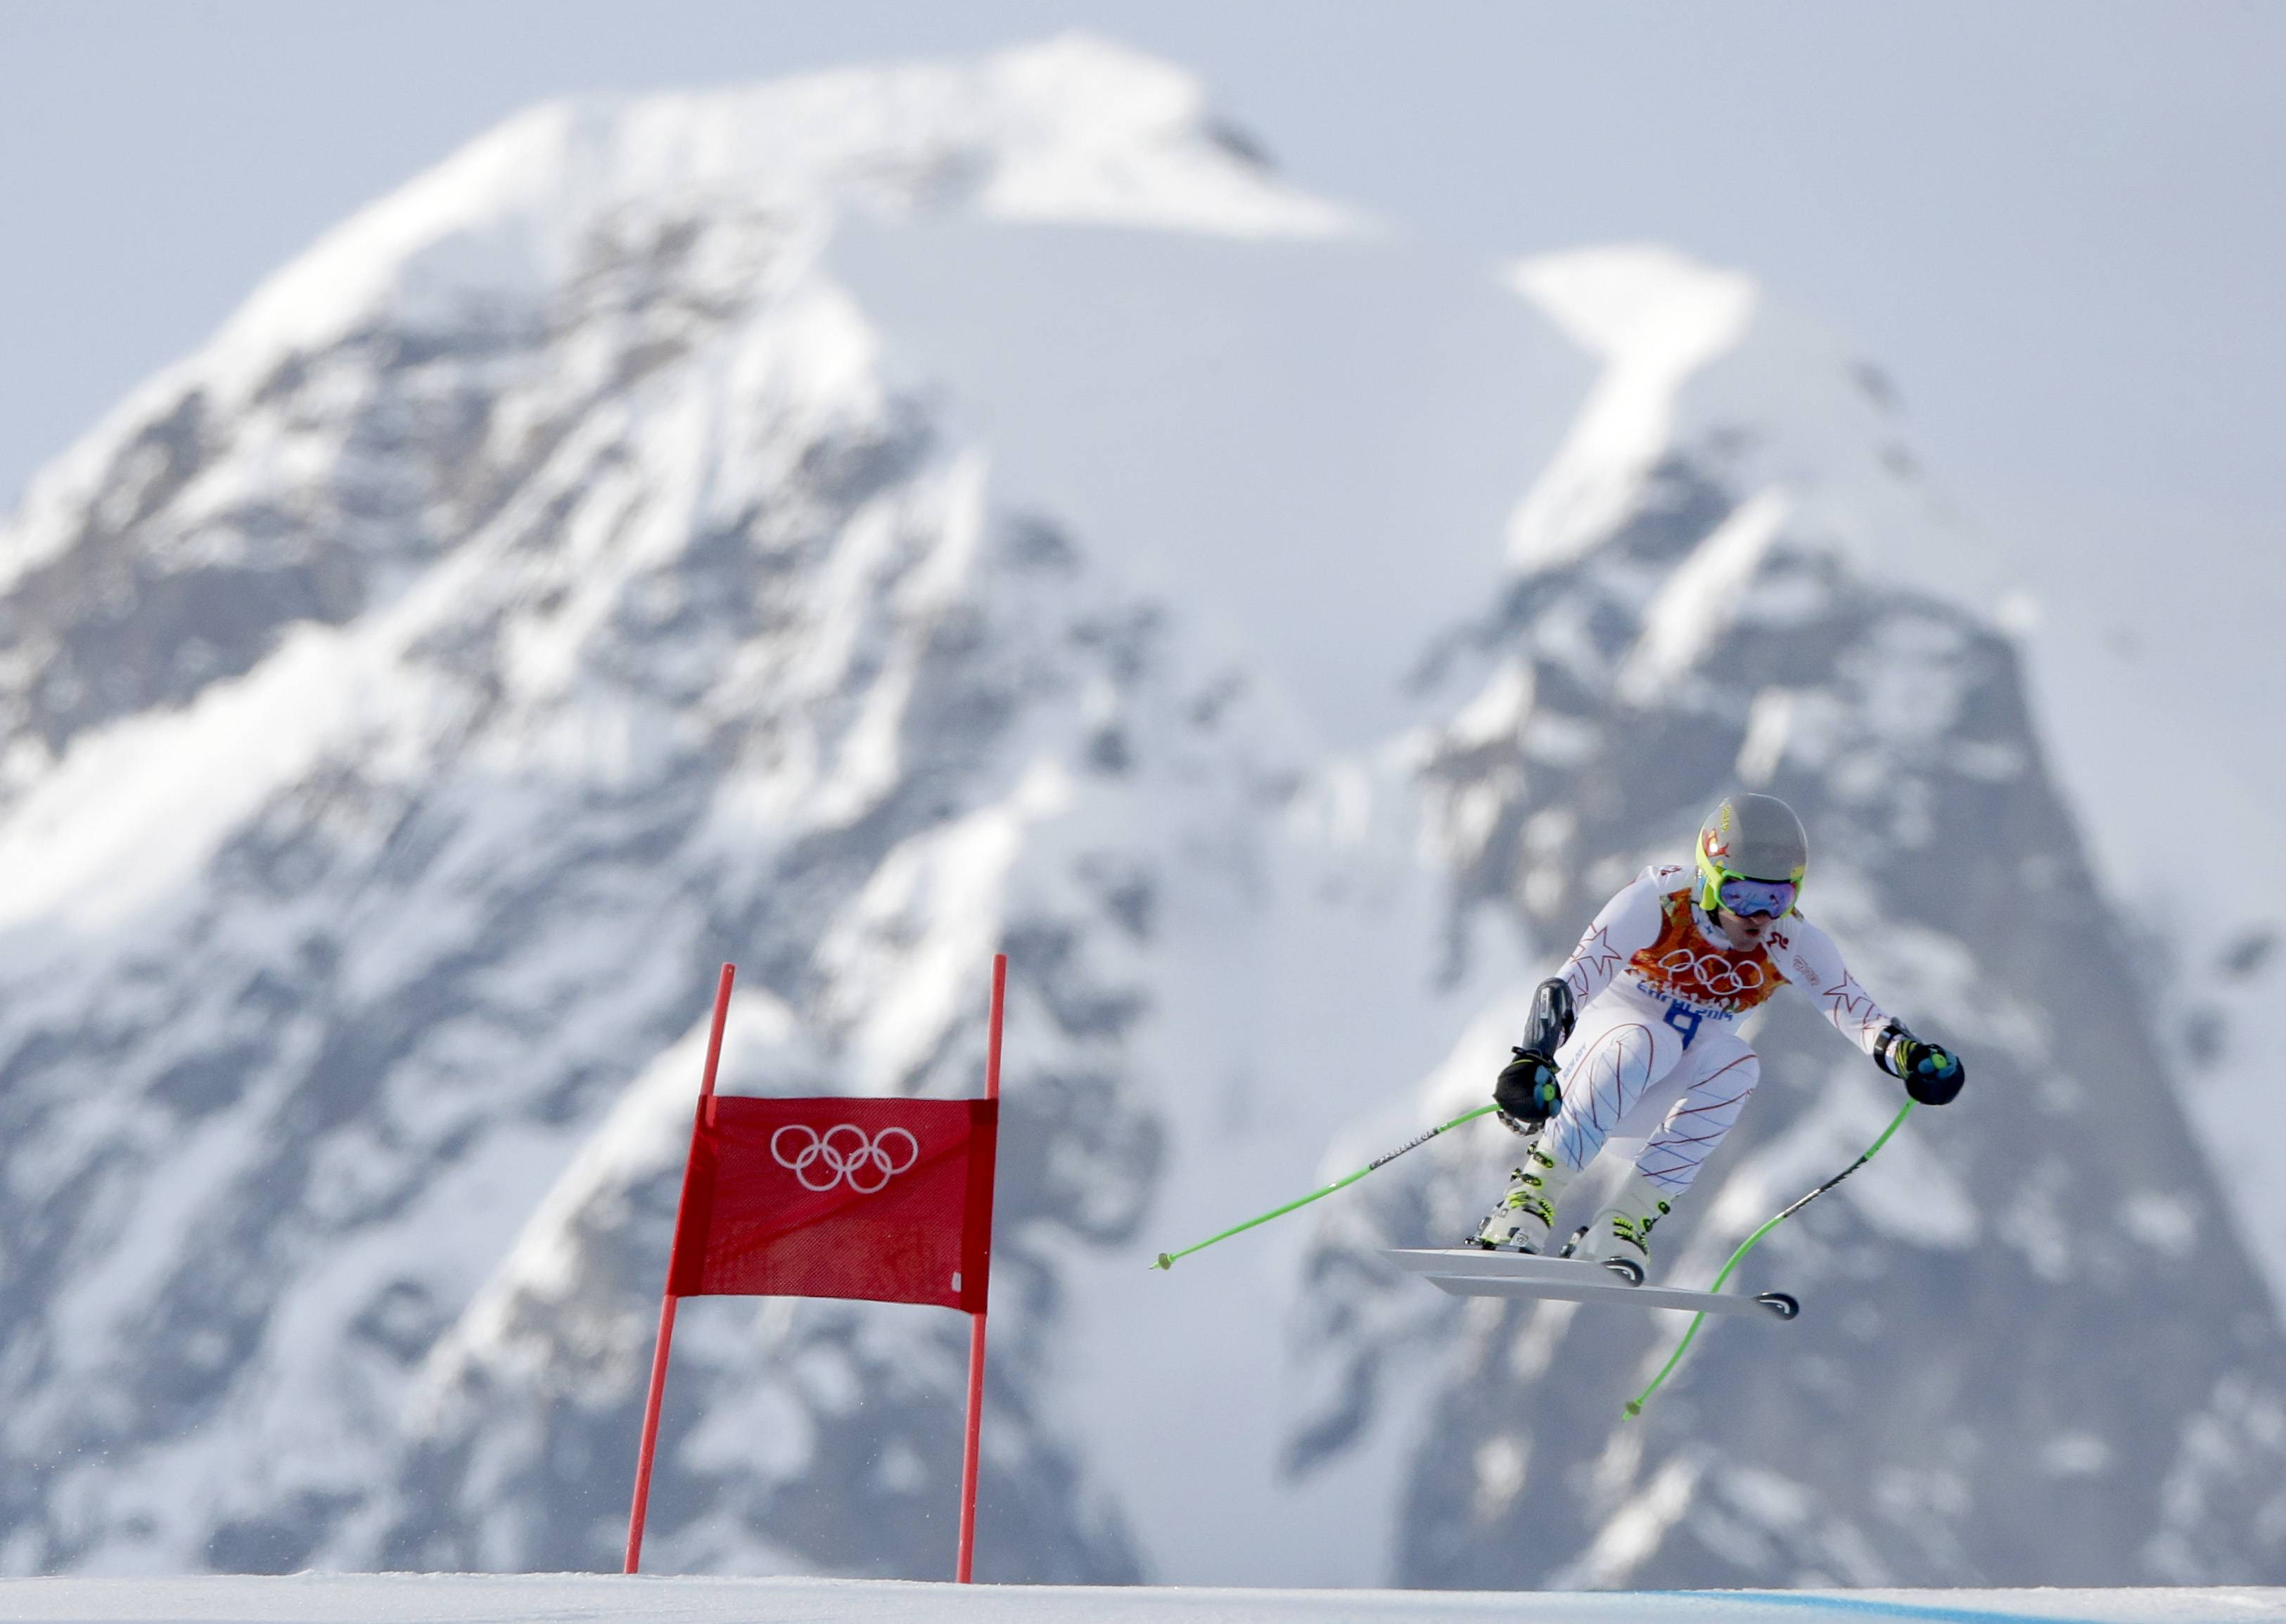 United States' Ted Ligety makes a jump in the men's super-G at the Sochi 2014 Winter Olympics, Sunday, Feb. 16, 2014, in Krasnaya Polyana, Russia.